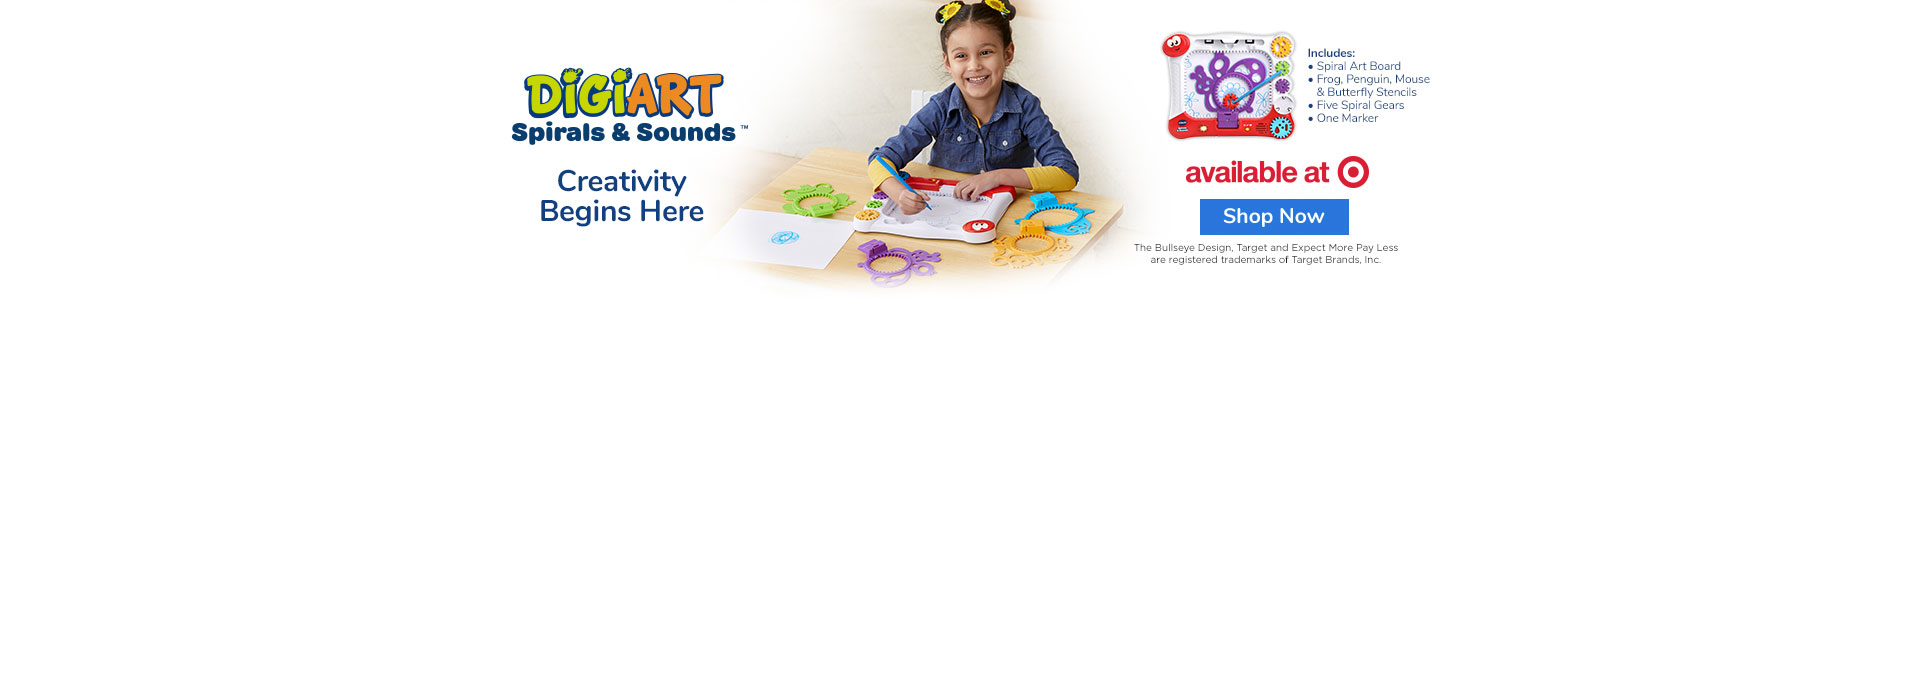 NEW! DigiArt Spirals & Sounds™ - Buy Now at Target